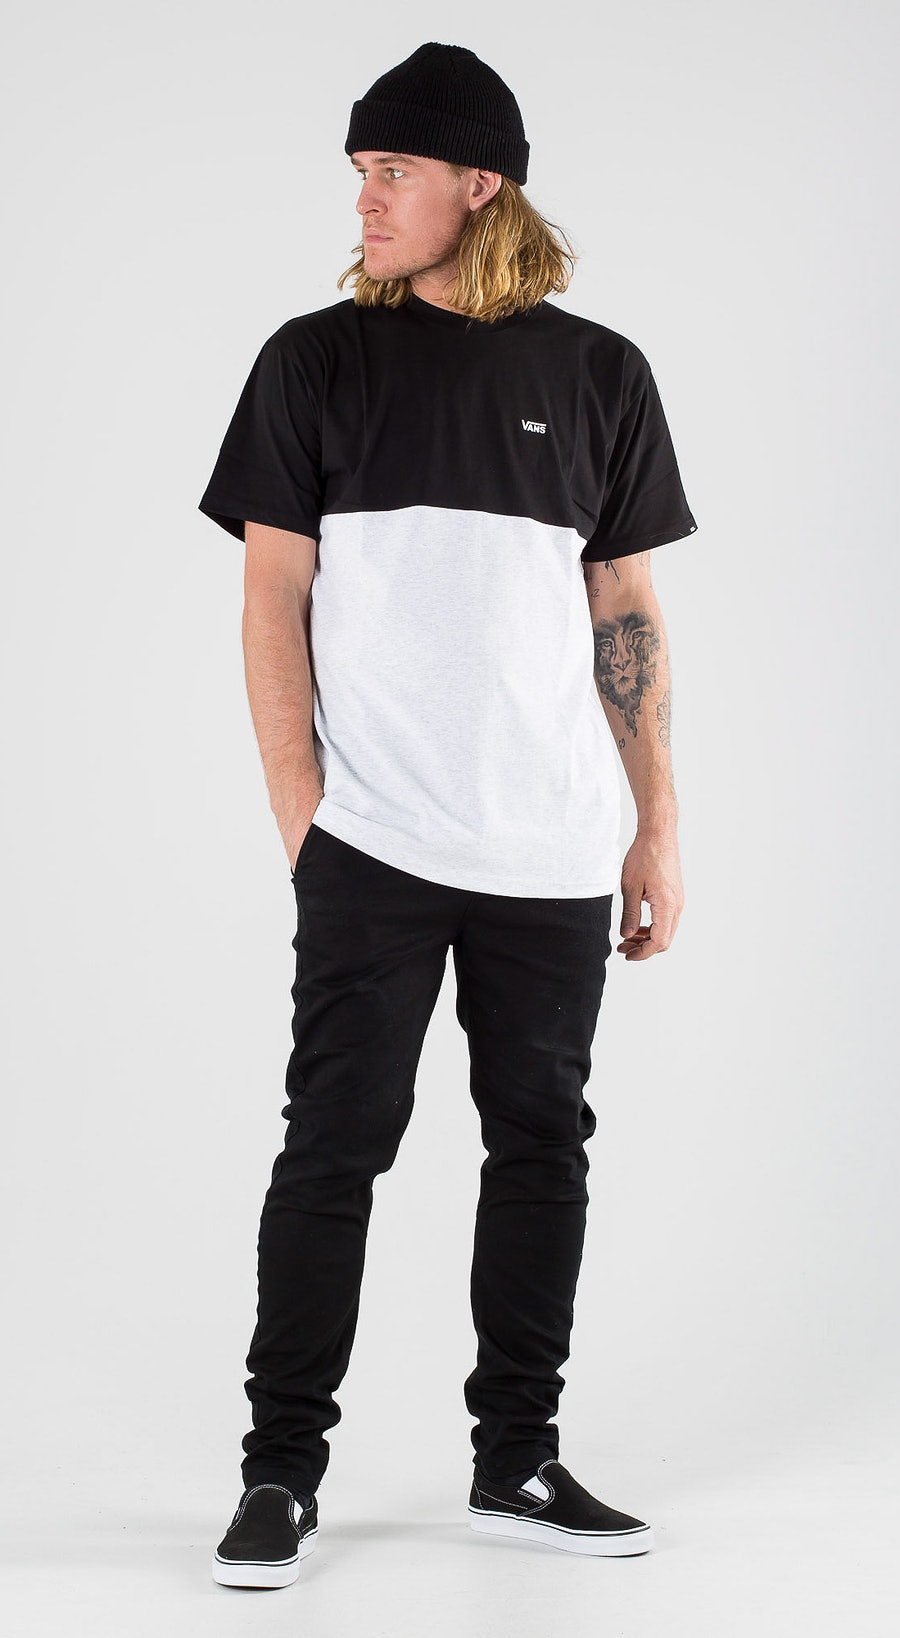 Vans Colorblock Tee Ash Heather Black Outfit Multi